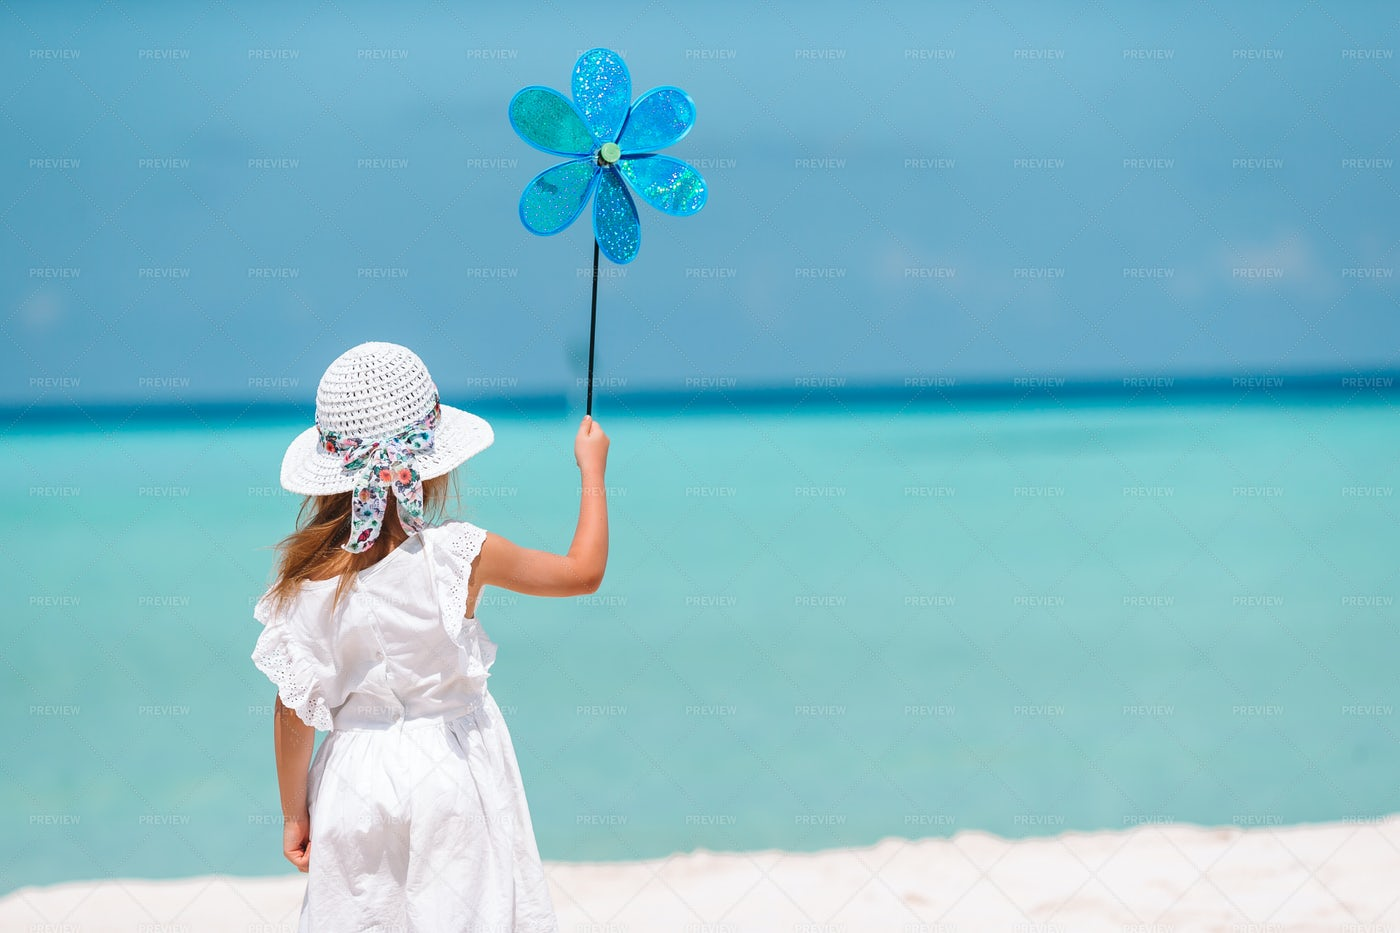 Girl With A Flower Windmill Toy: Stock Photos